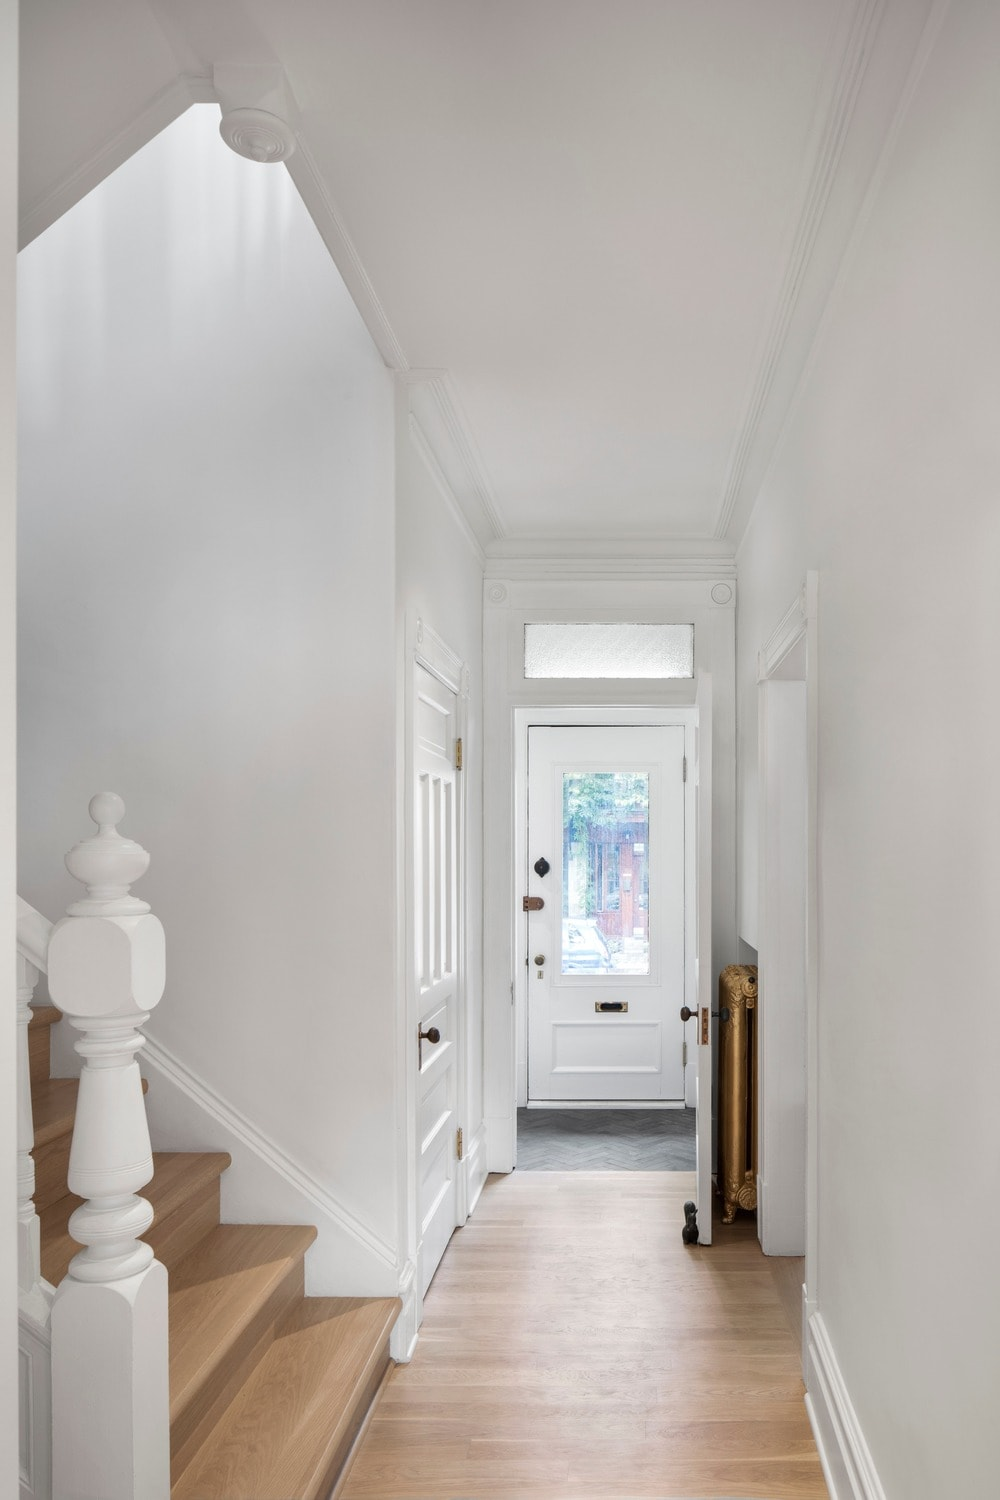 This is a look at the hallway and the white wooden back door at the far end. This door has a glass panel and a transom window that brings in natural lights to brighten the white walls and ceiling.